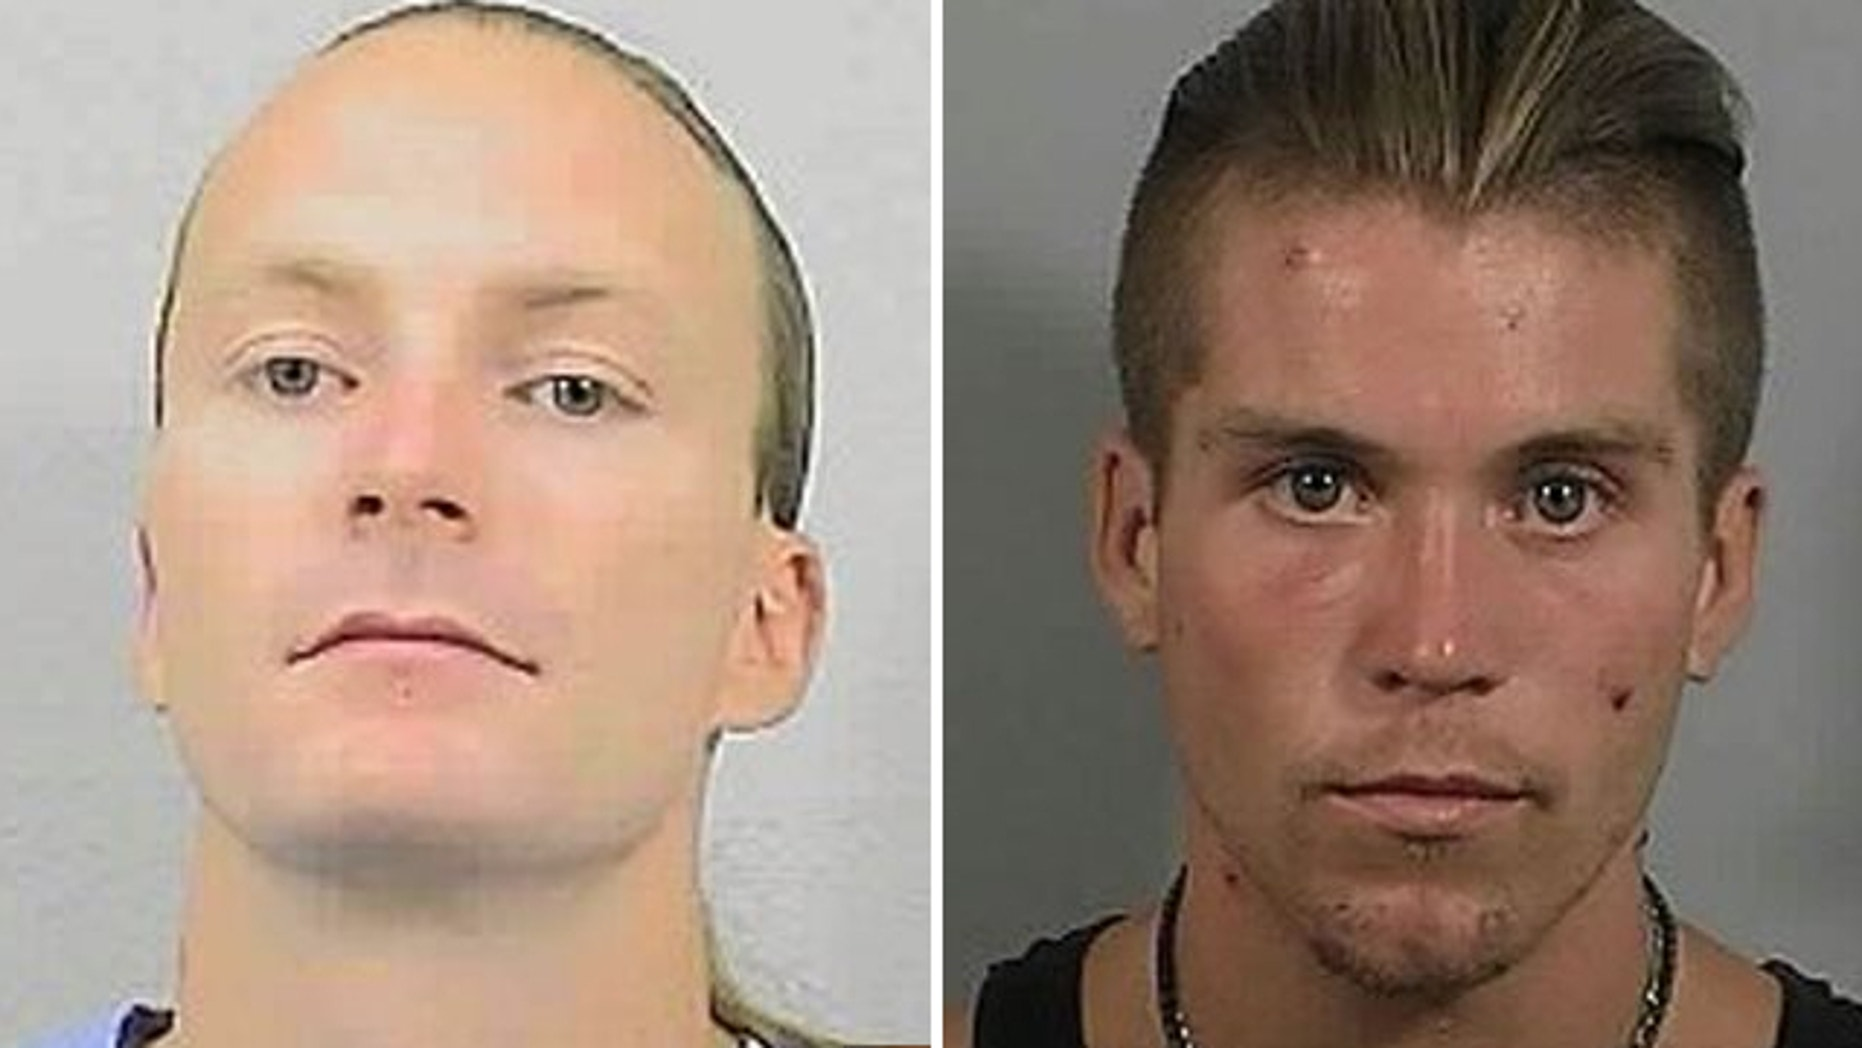 UNDATED: This image provided by California Department of Corrections and Rehabilitation shows  Tobias Summers, left, and Daniel Martinez.